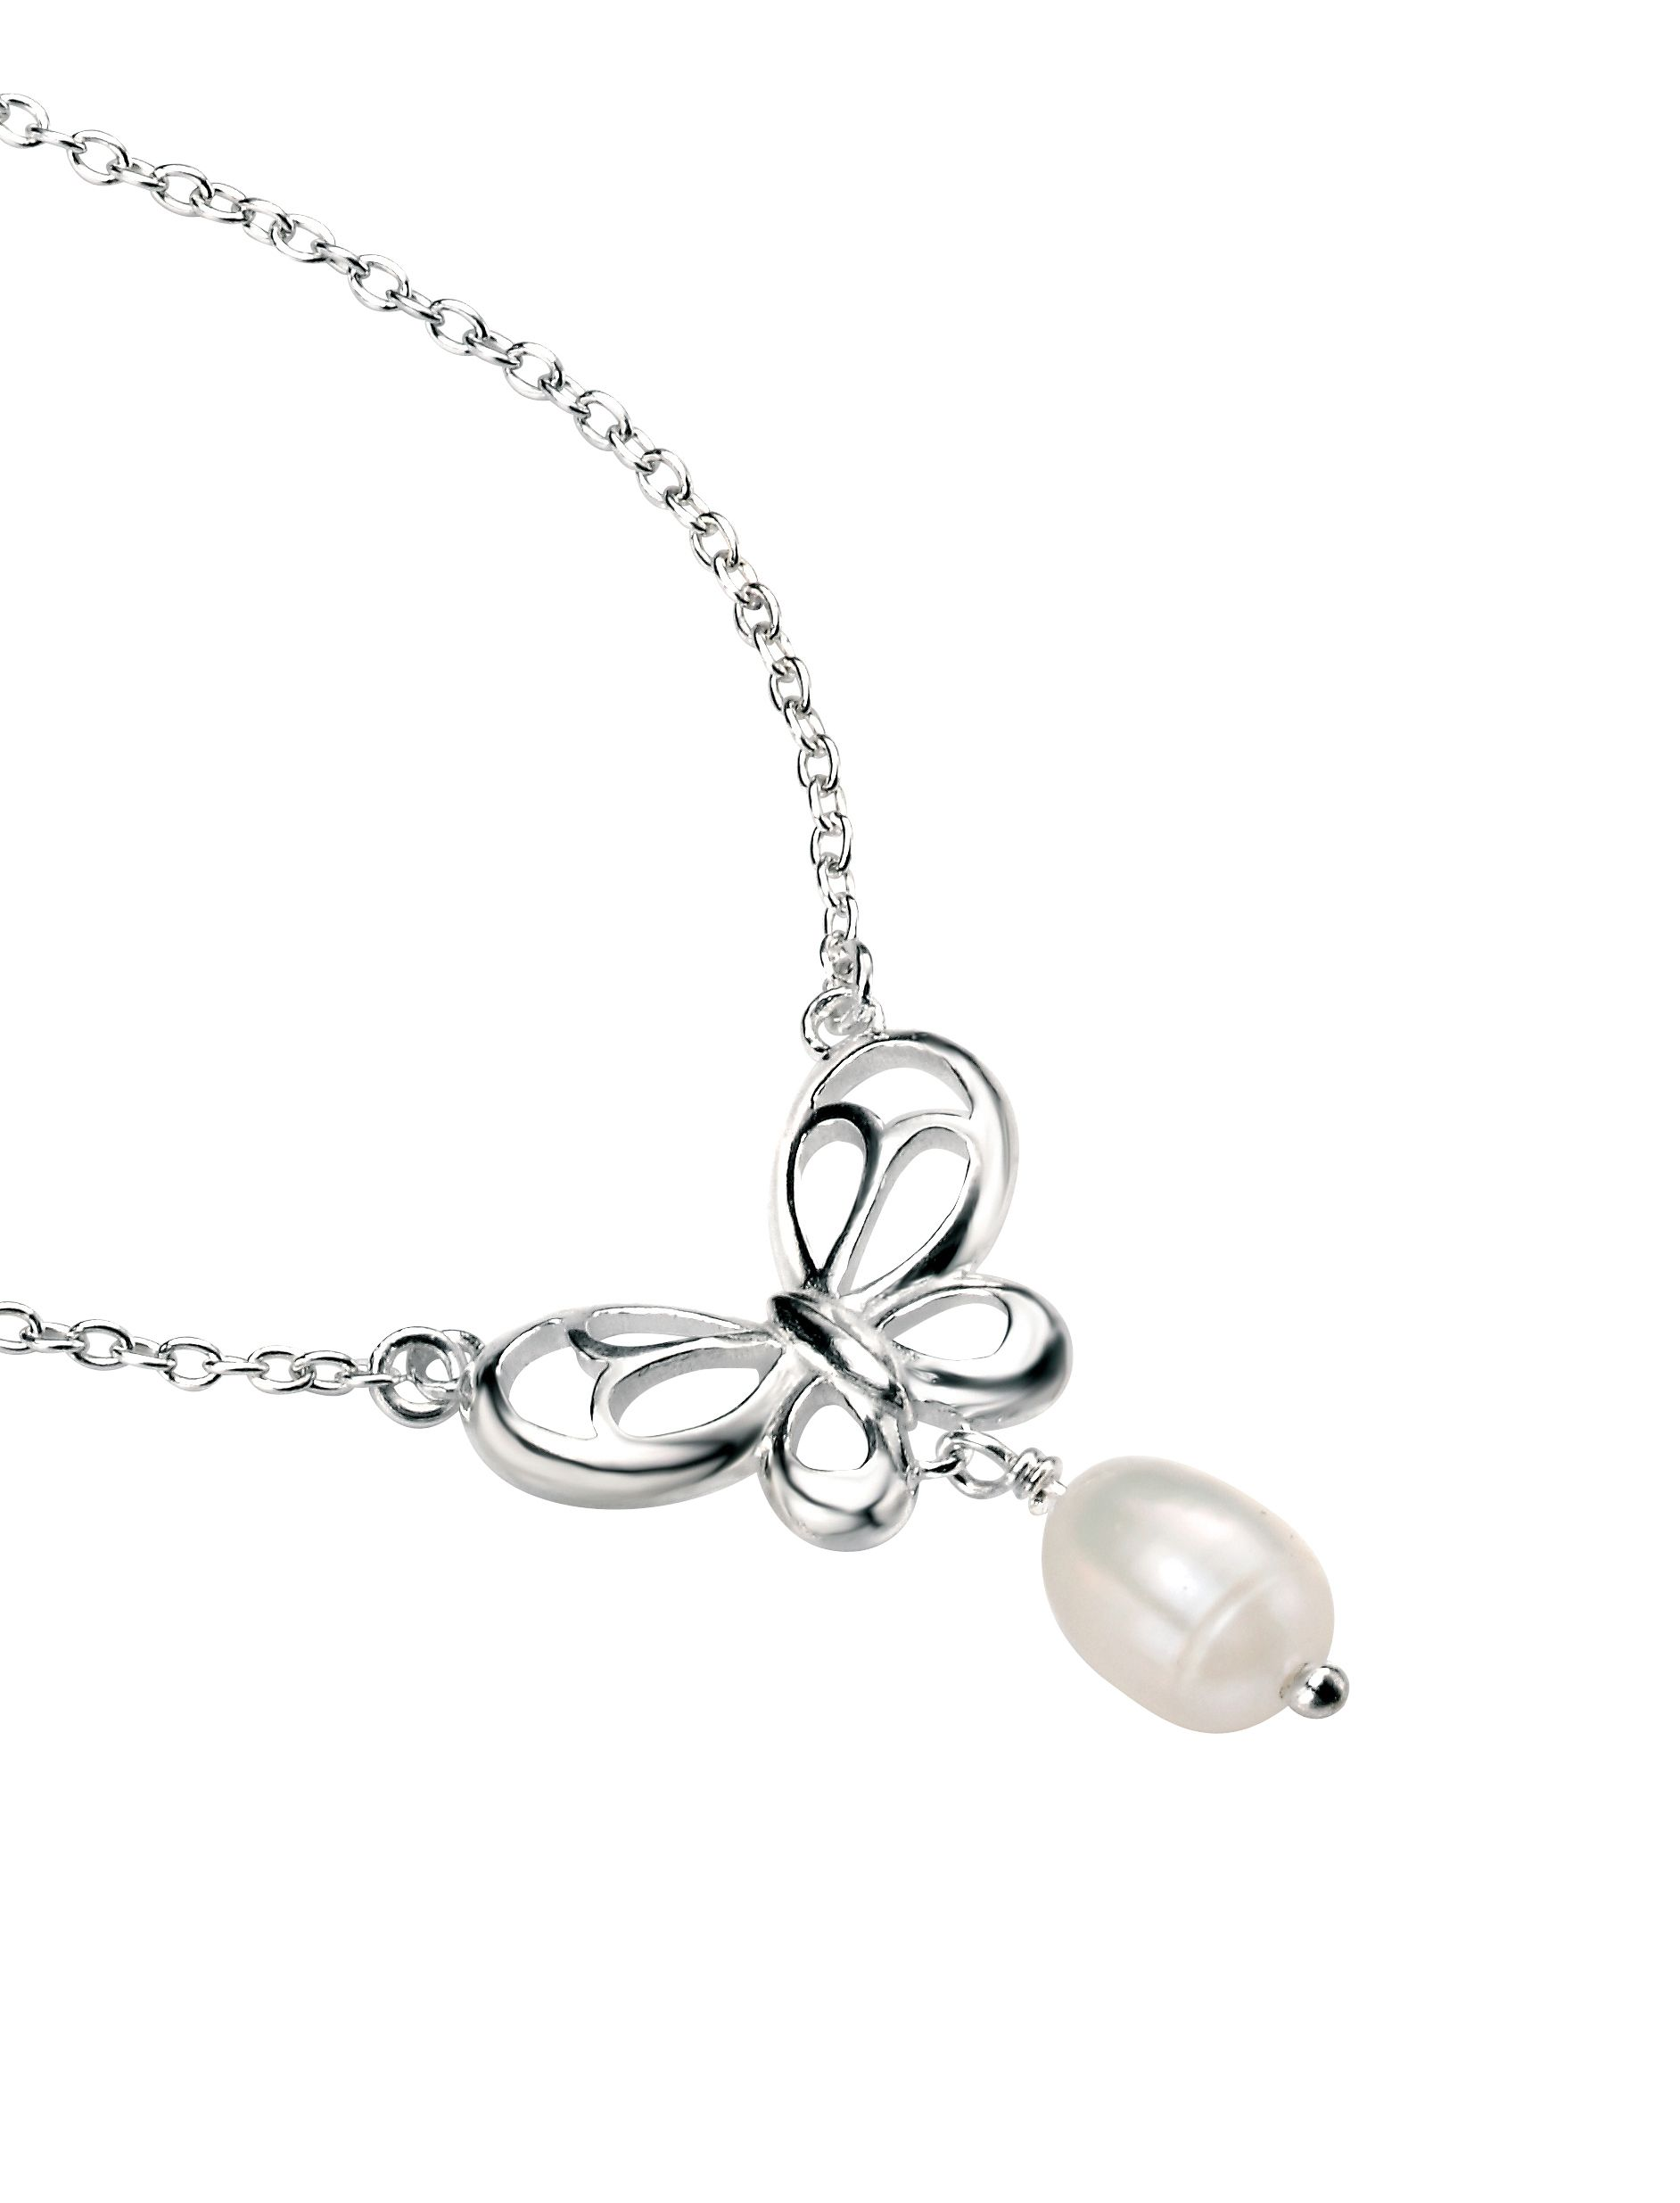 Elements Sterling Silver Women's N3535W Butterfly Necklace with Freshwater Pearl Drop Length 46cm